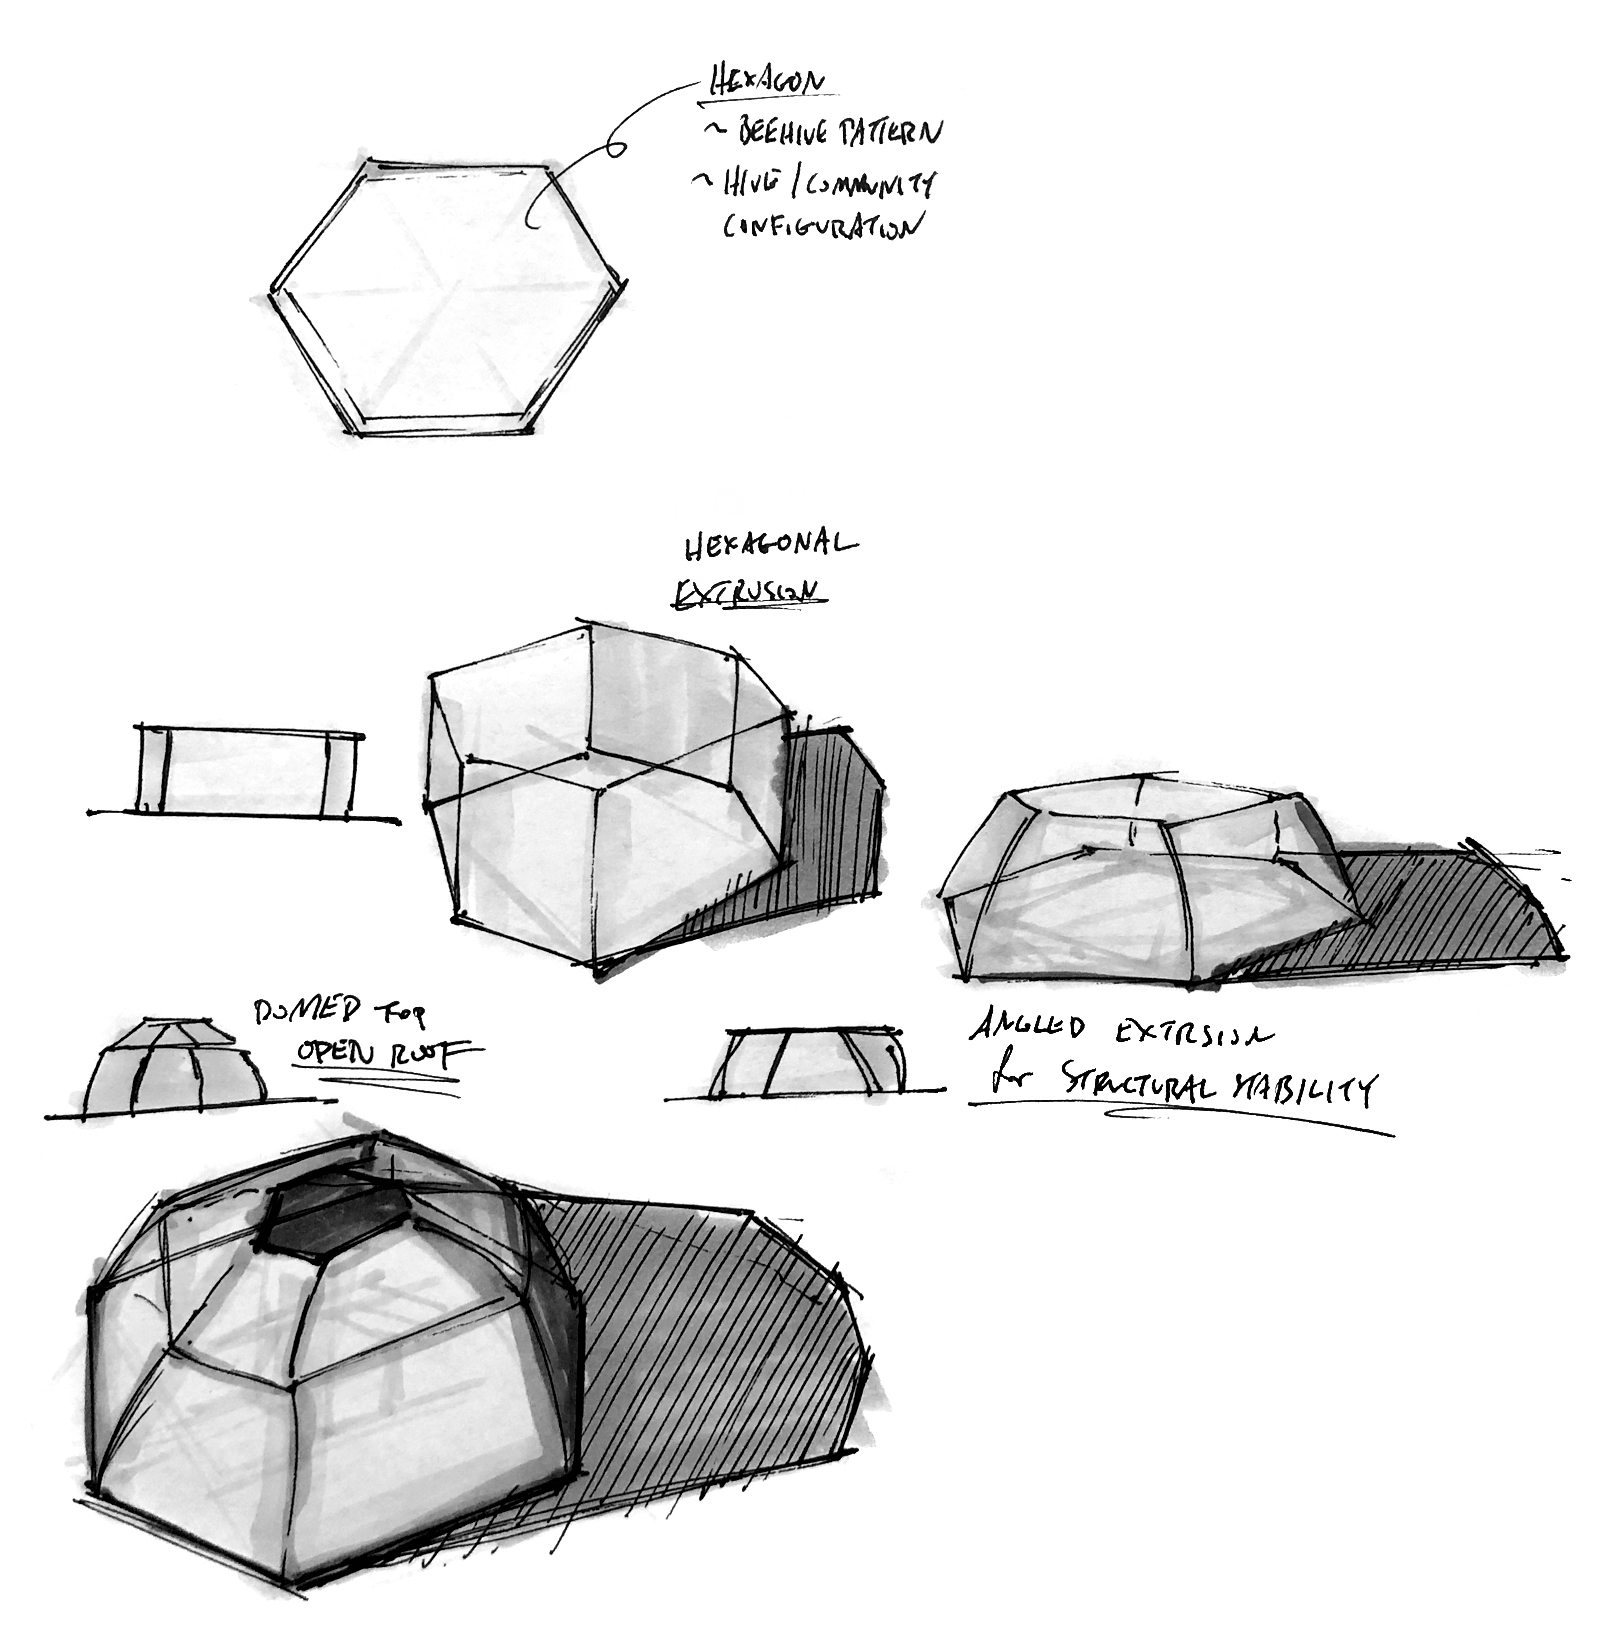 - This simplified hexagonal form, in addition to its support strength, also allowed a beehive-like configuration to create modular housing or the forming of communities.